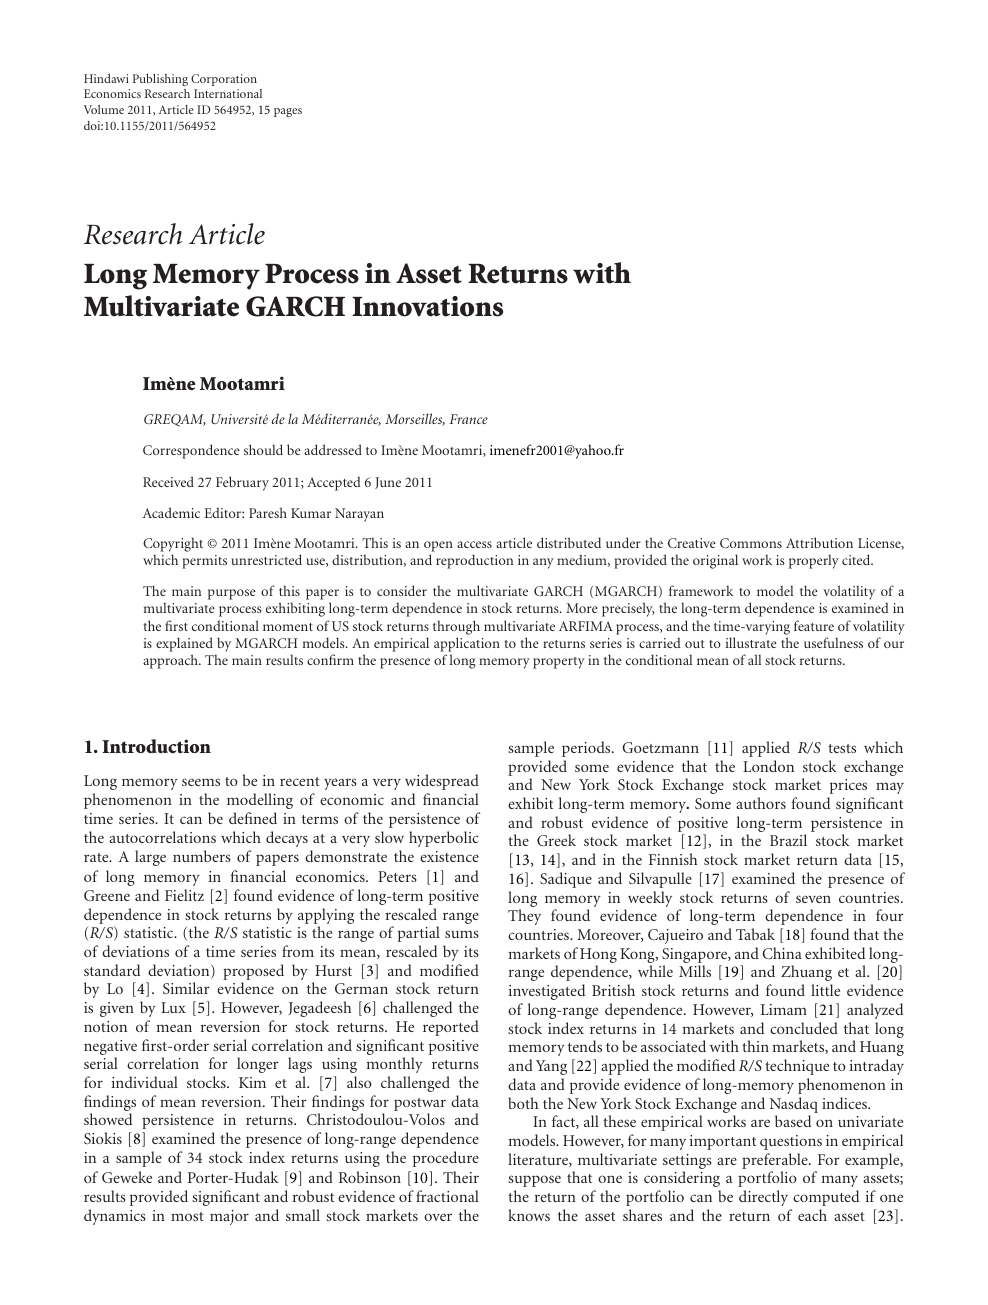 Long Memory Process in Asset Returns with Multivariate GARCH